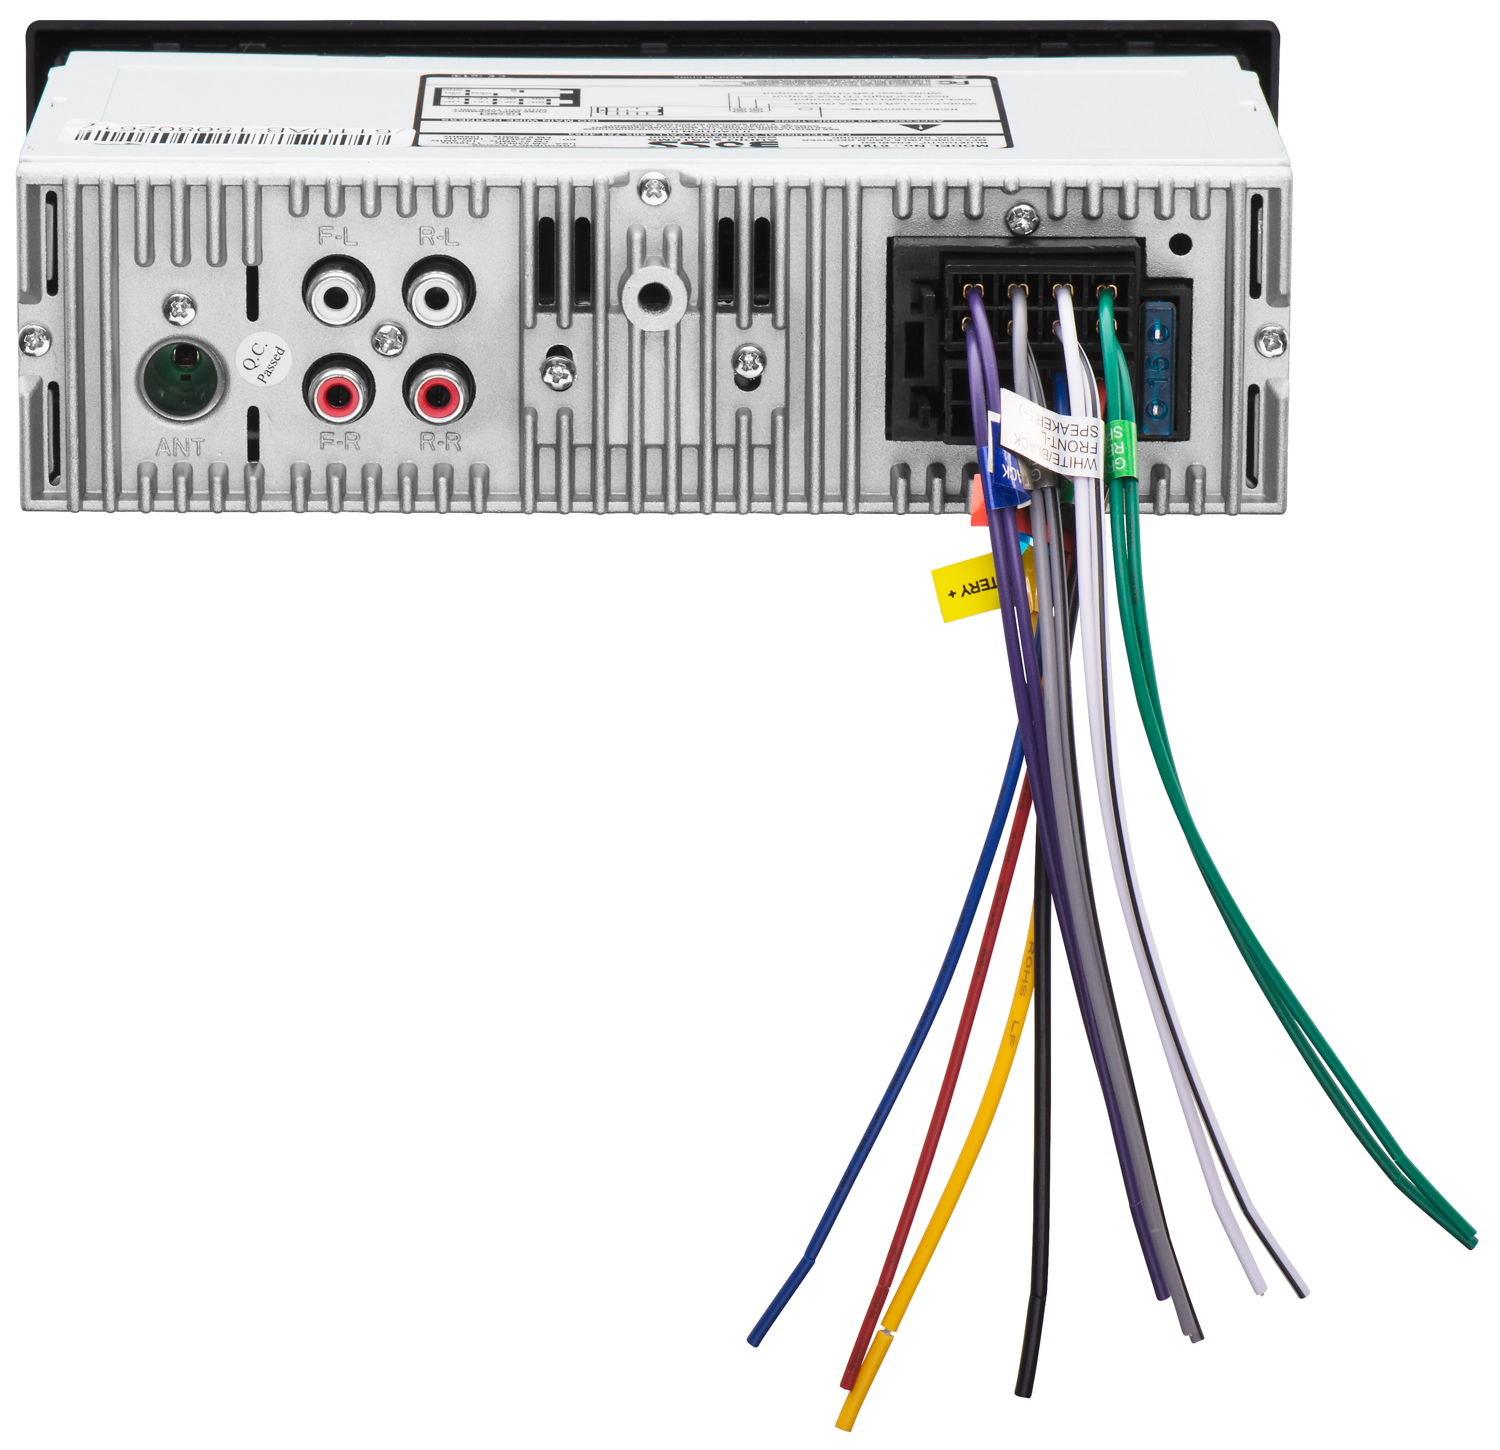 [CSDW_4250]   612UA | BOSS Audio Systems, a Leading Audio & Video Brand | Boss Audio Wiring Diagram Radio |  | Boss Audio